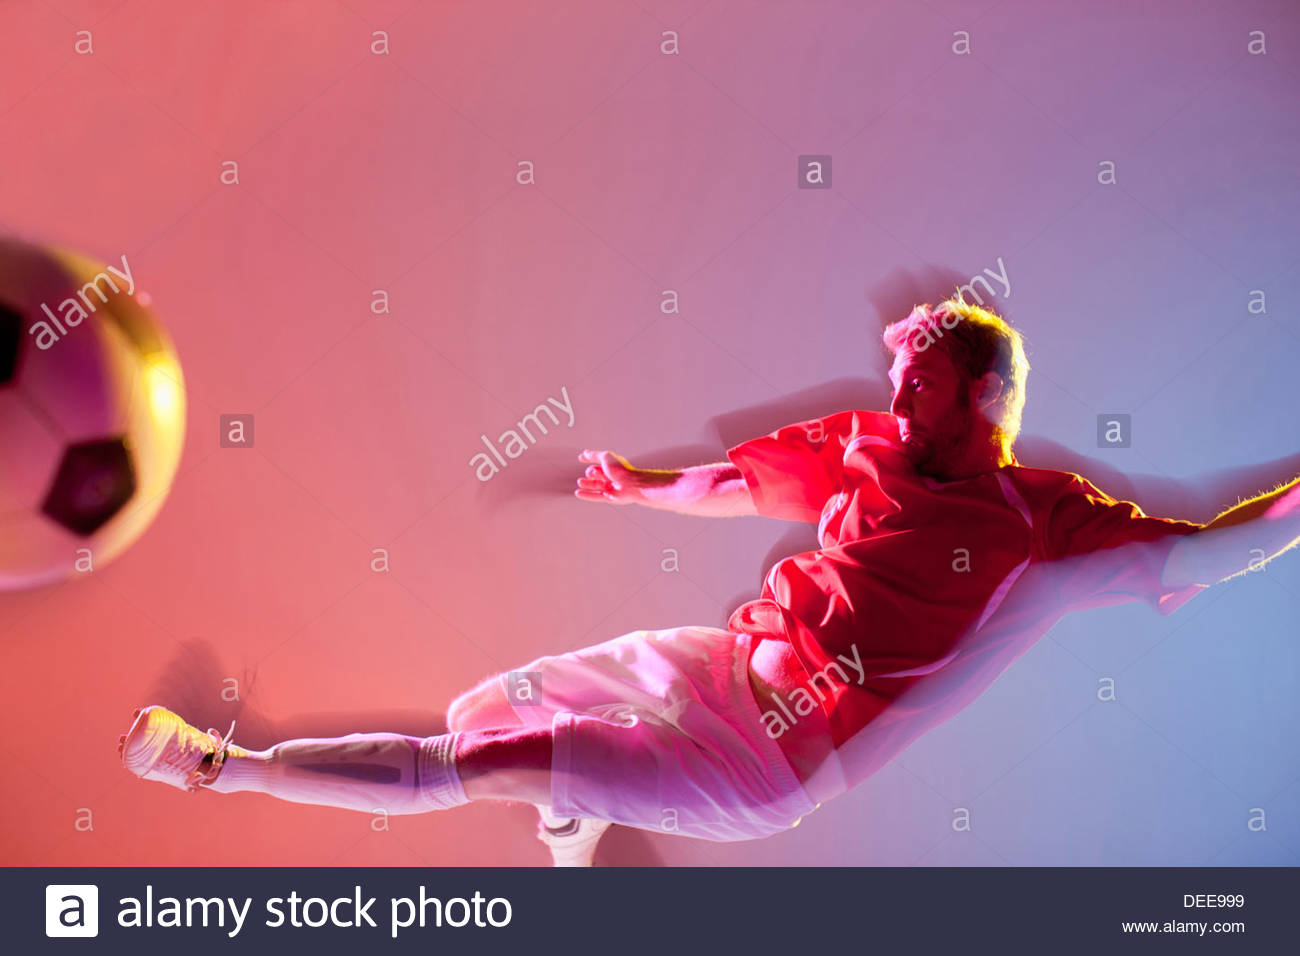 Blurred view of soccer player kicking ball Photo Stock